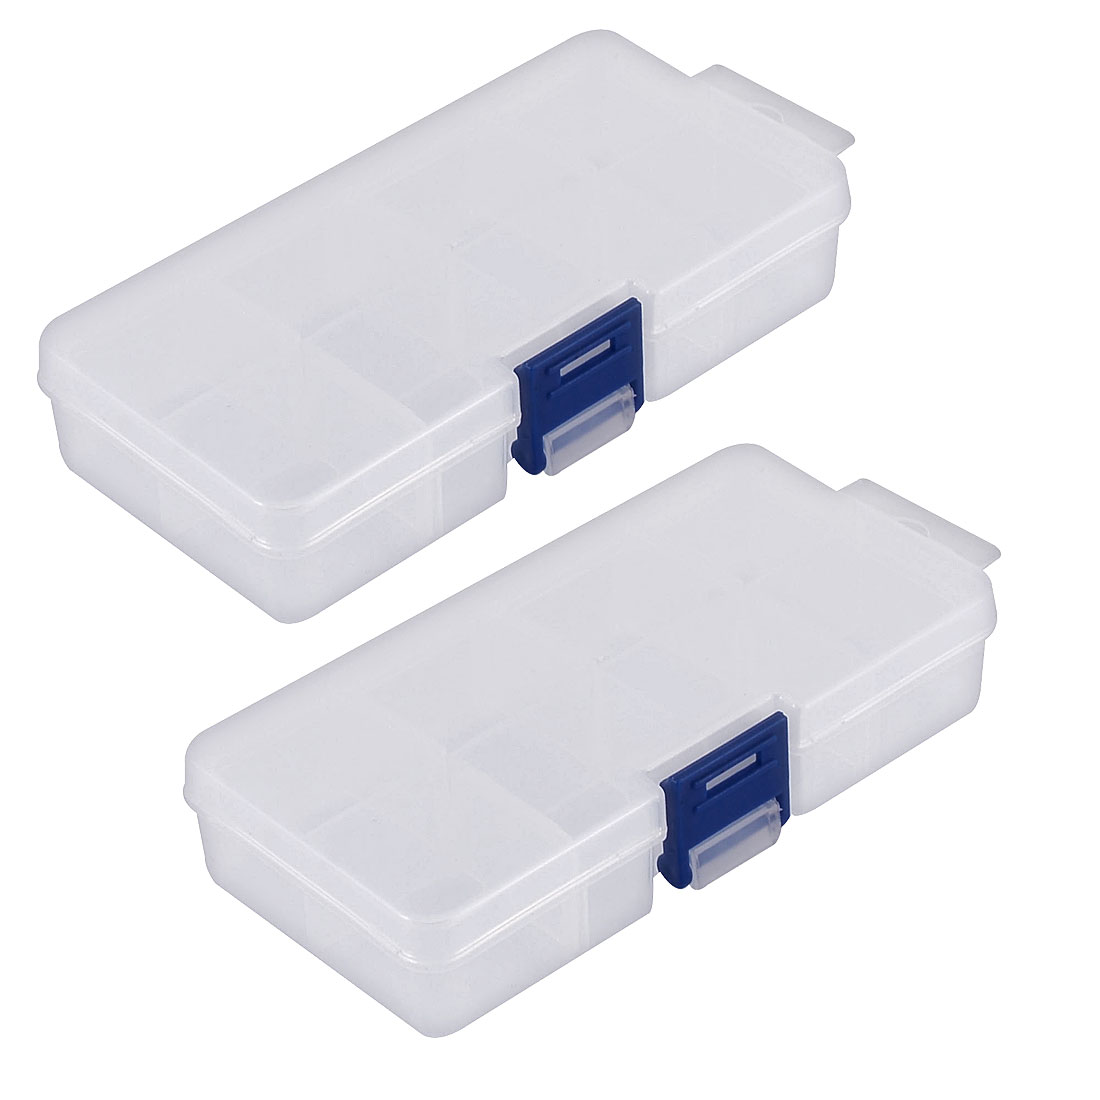 Jewelry Earring Pill Adjustable Plastic 8 Slots Storage Divider Box Case 2pcs